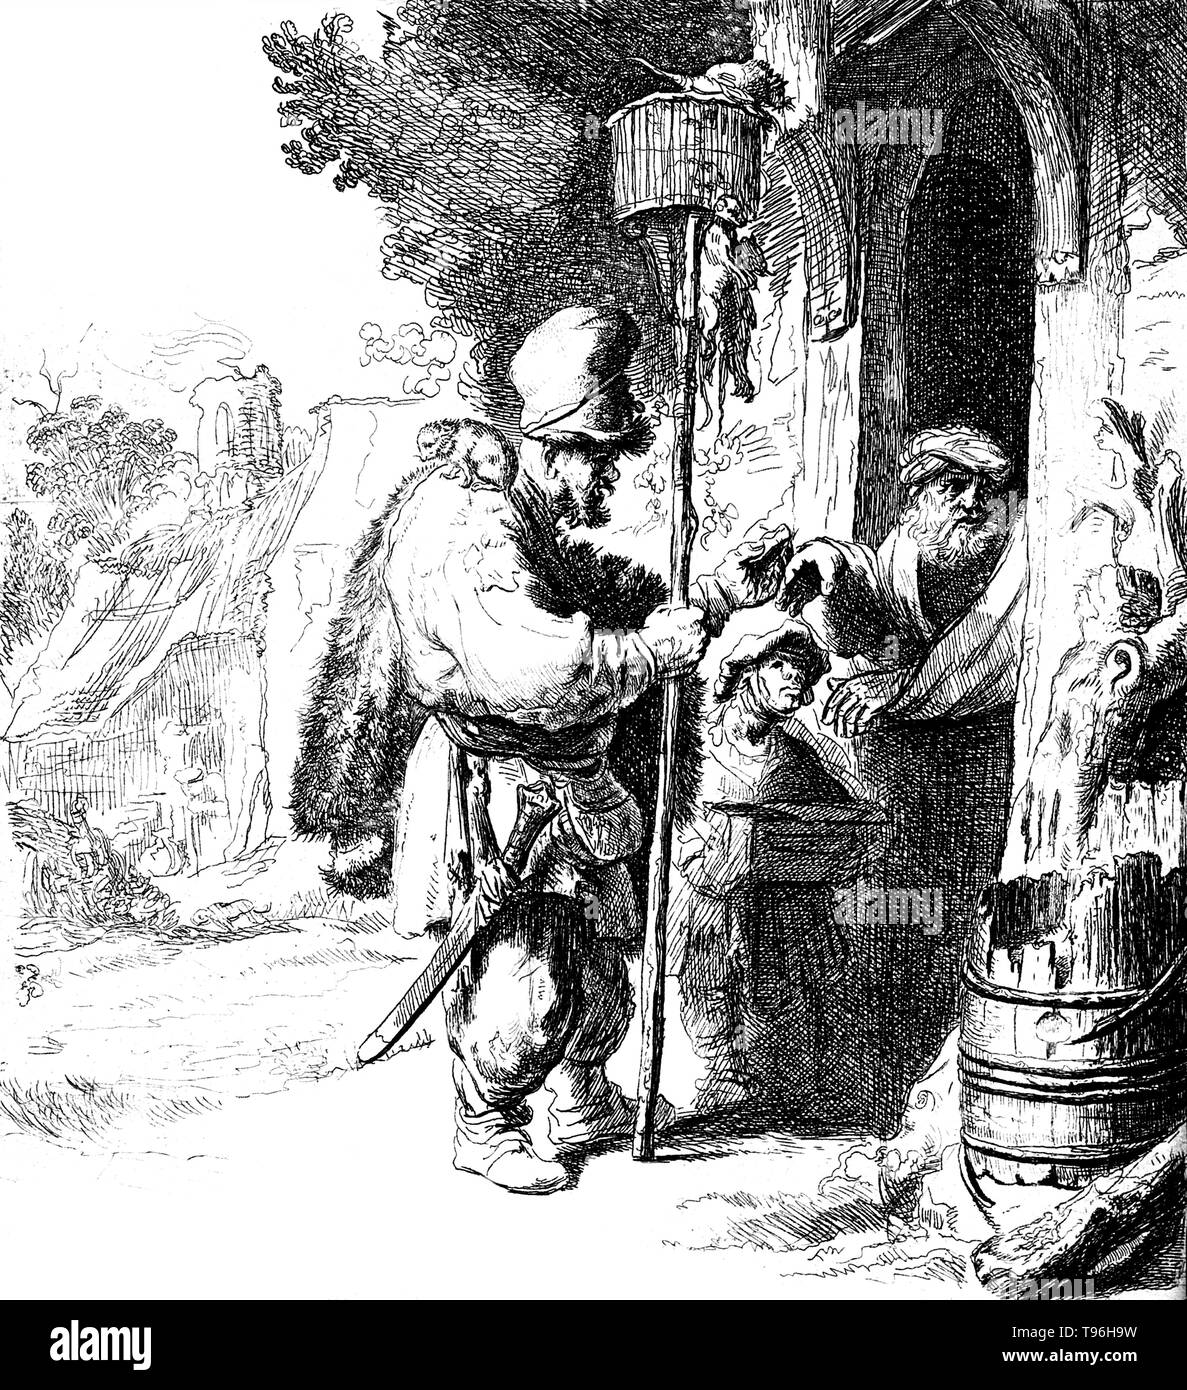 A rat-catcher and his young assistant standing at a doorway are having their services refused by an old man; the rat-catcher holds a long stick with a cage on top containing rats, on his right shoulder sits a rat. A rat-catcher is a person who practices rat-catching as a professional form of pest control. Keeping the rat population under control was practiced in Europe to prevent the spread of diseases, most notoriously the Black Plague, and to prevent damage to food supplies. In modern developed countries, such a professional is otherwise known as a pest control operative or pest technician.  - Stock Image